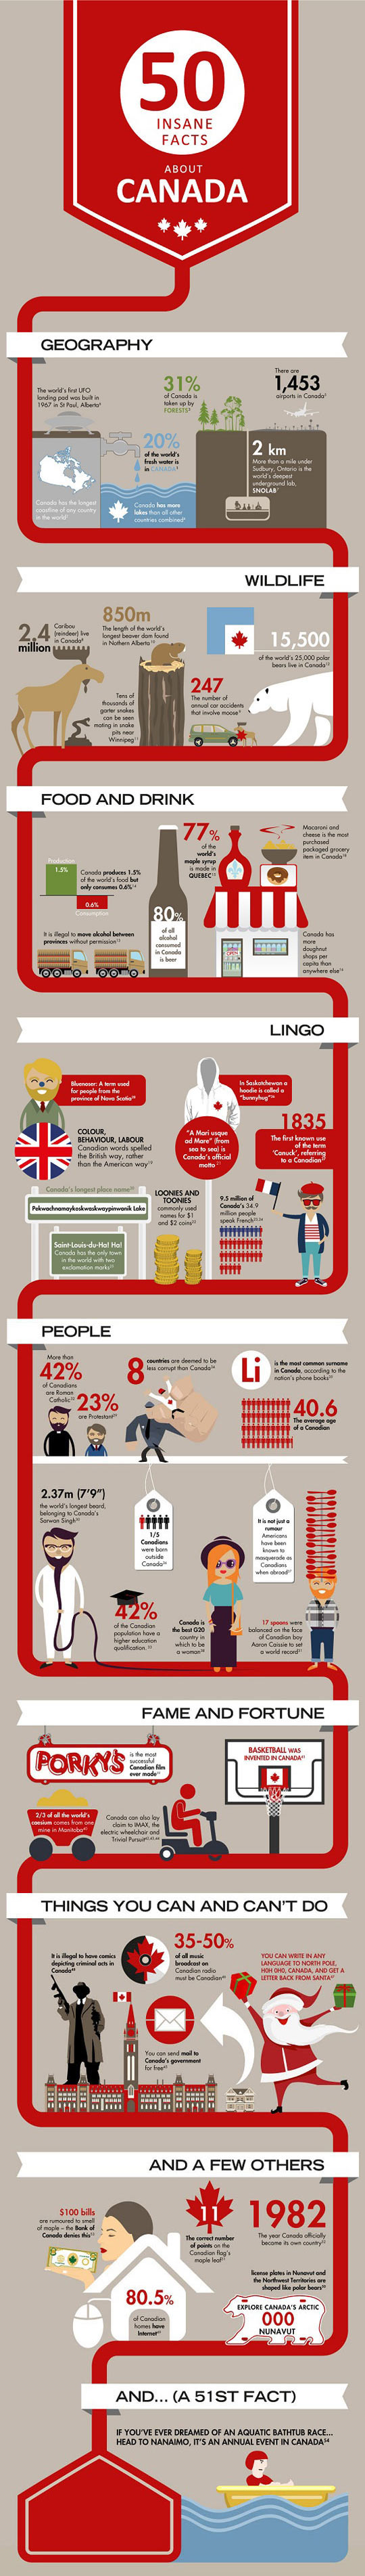 Crazy Facts About Canada